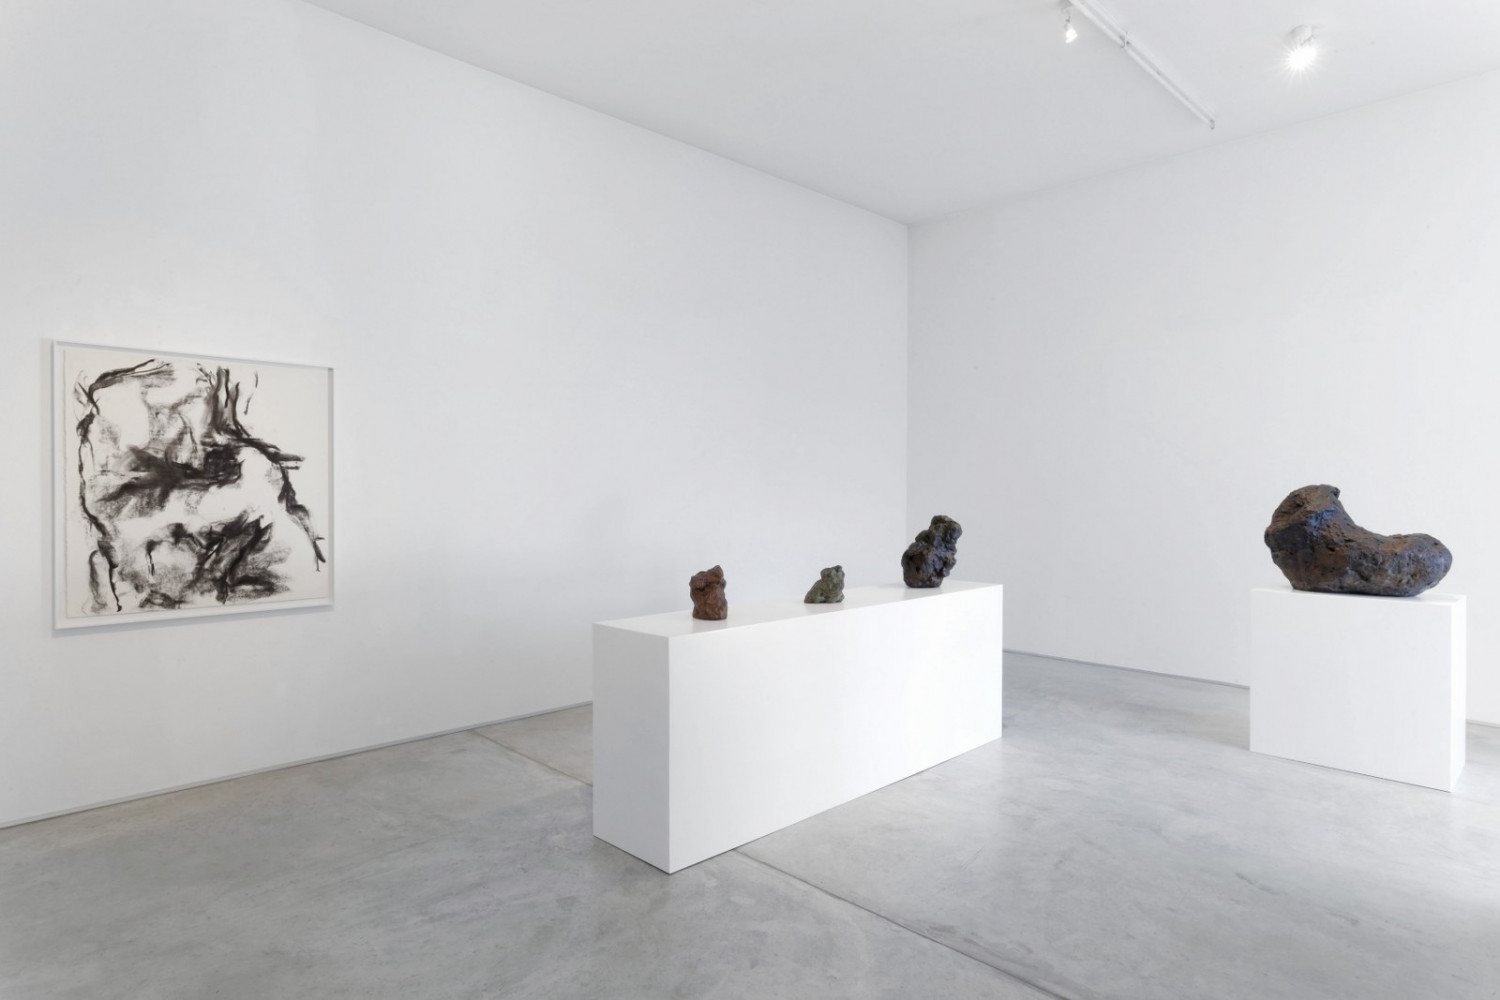 William Tucker, 'Sculture', Installation view, Buchmann Galerie Agra / Lugano